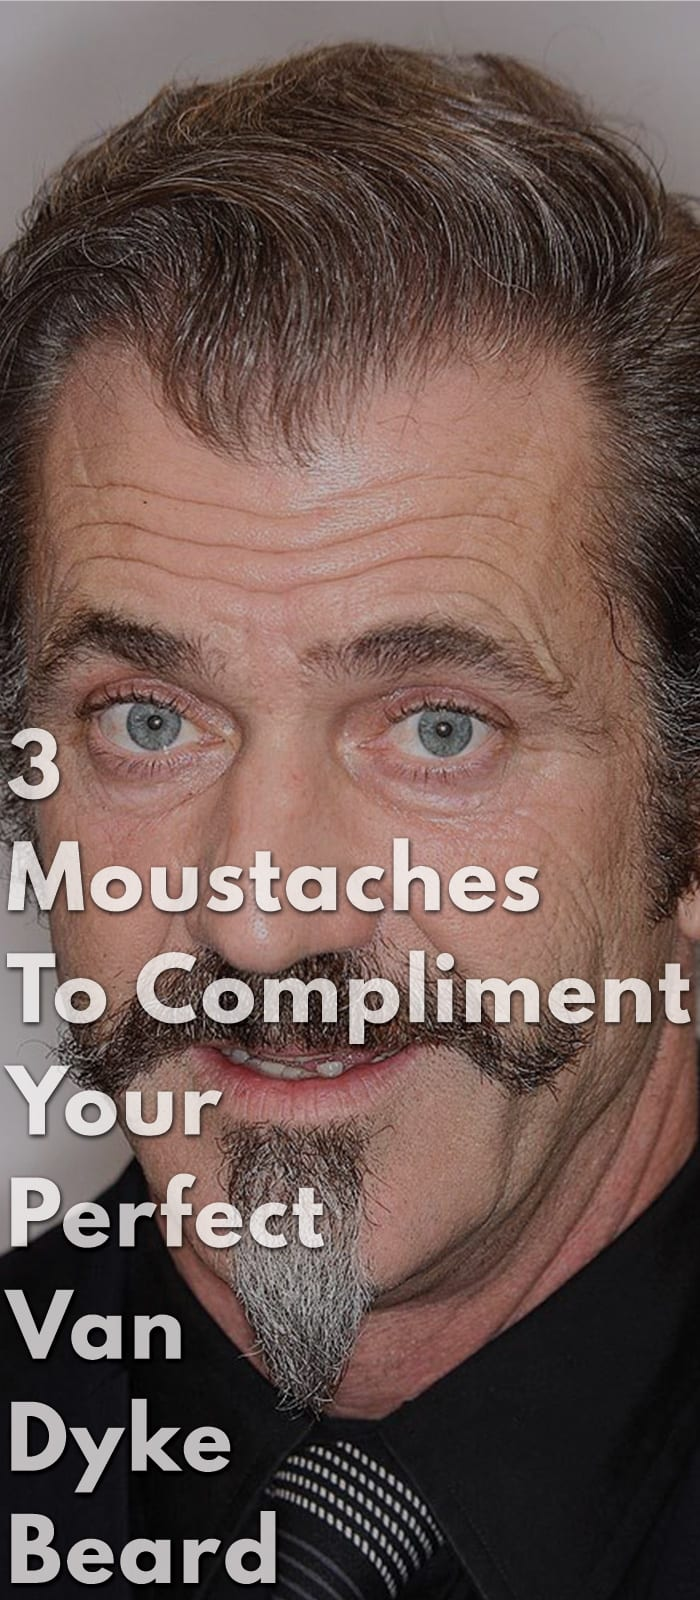 3-Moustaches-To-Compliment-Your-Perfect-Van-Dyke-Beard.